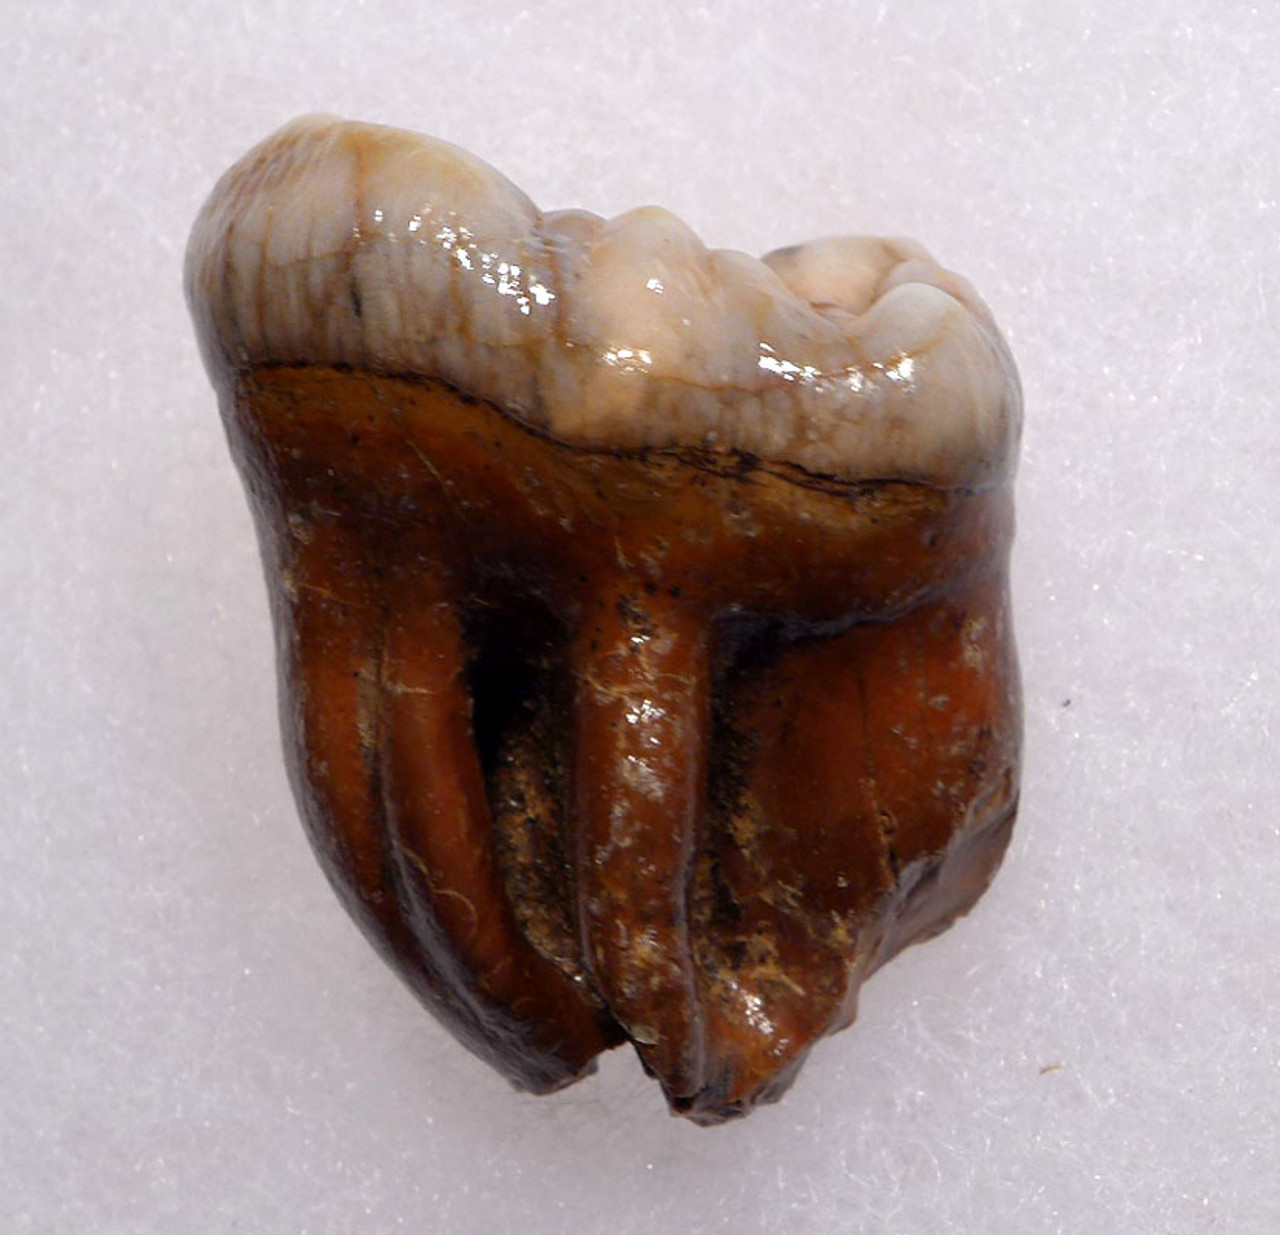 SUPERB AUSTRIAN CAVE BEAR FOSSIL MOLAR TOOTH WITH FULL ROOT FROM THE FAMOUS DRACHENHOHLE DRAGONS CAVE *LMX241